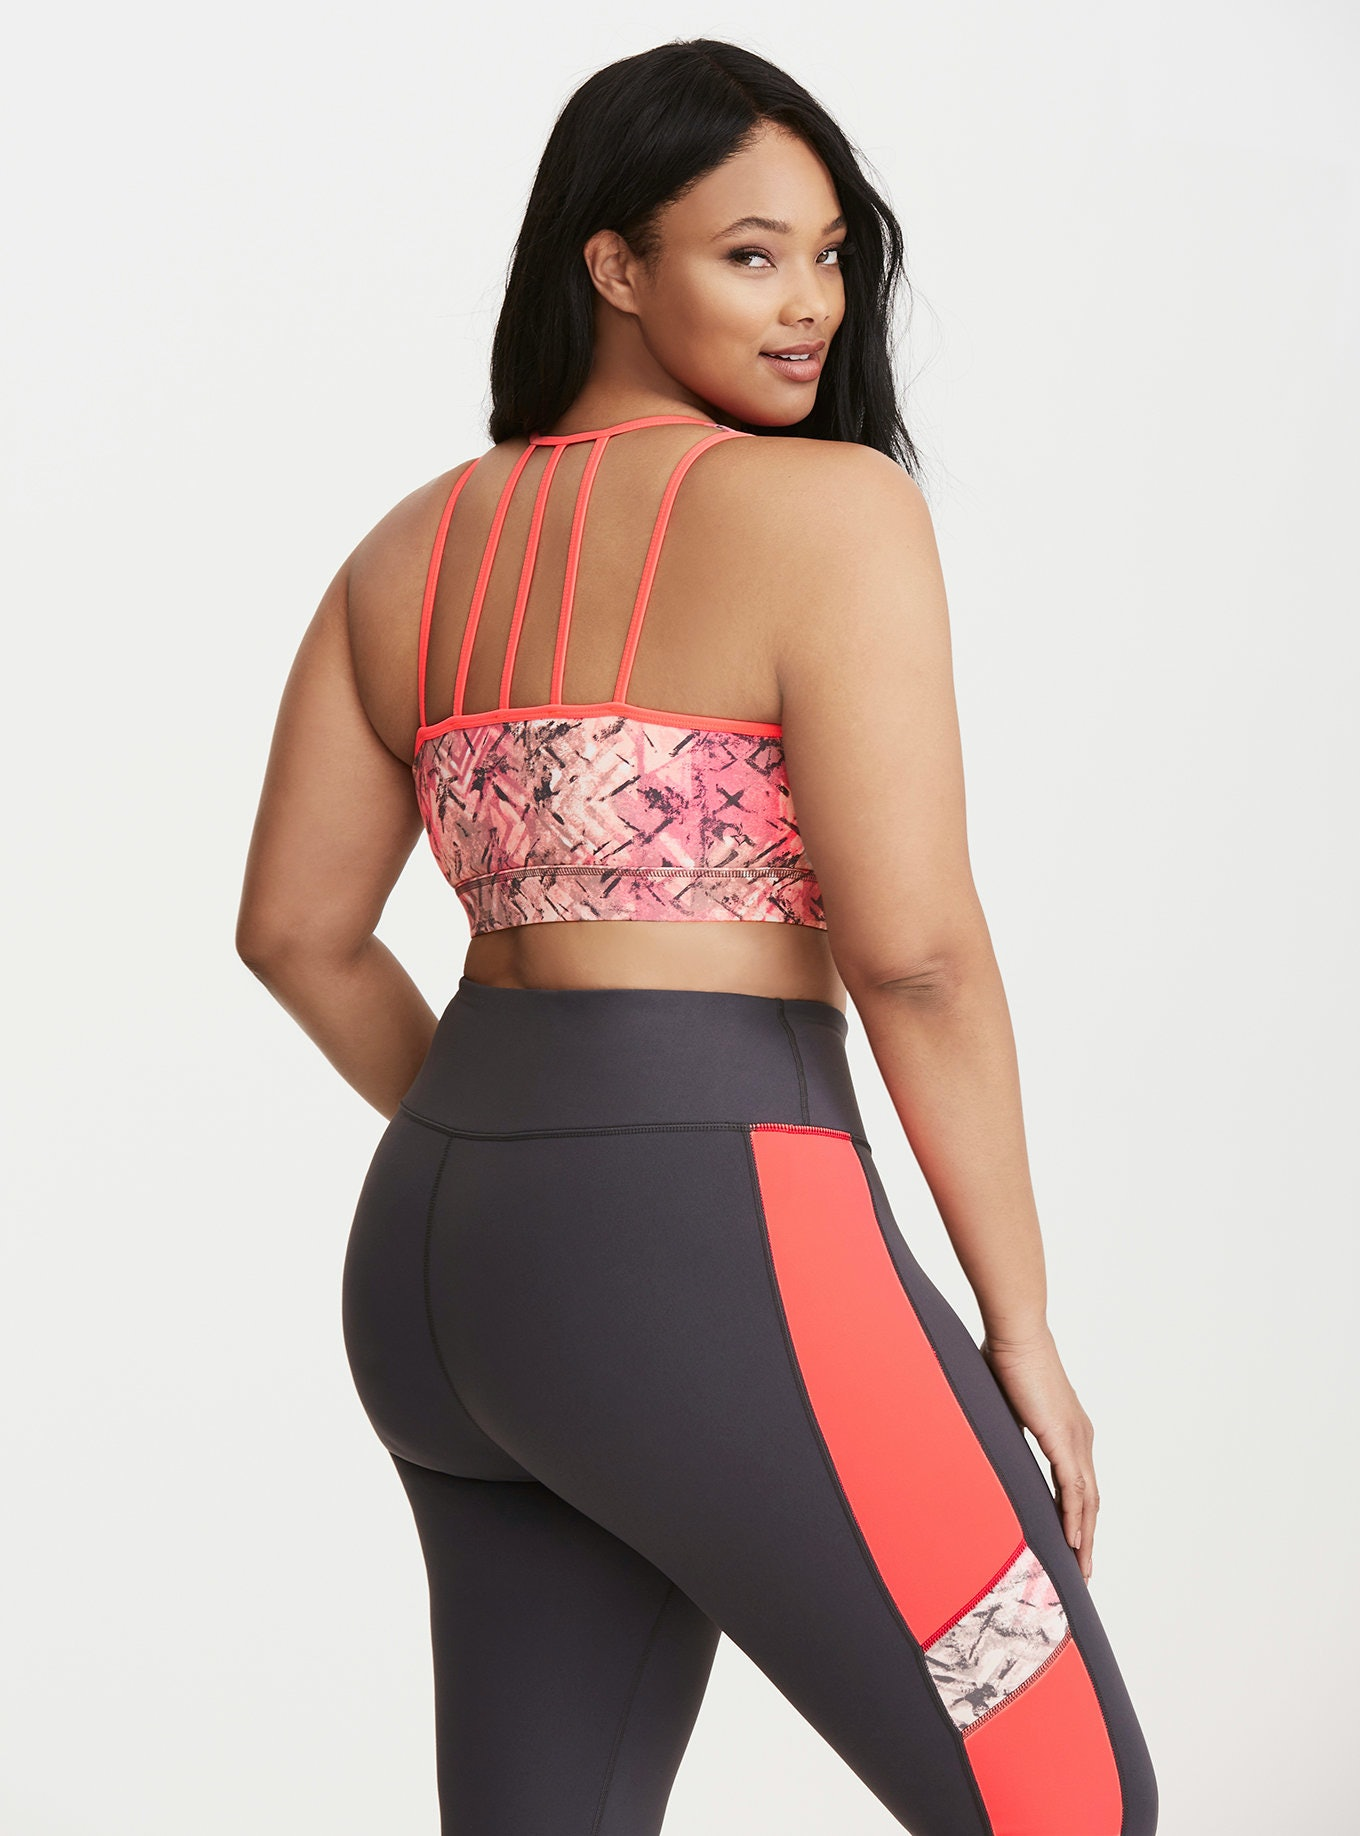 90b64adf09 11 Plus Size Sports Bras That Are Actually Comfortable